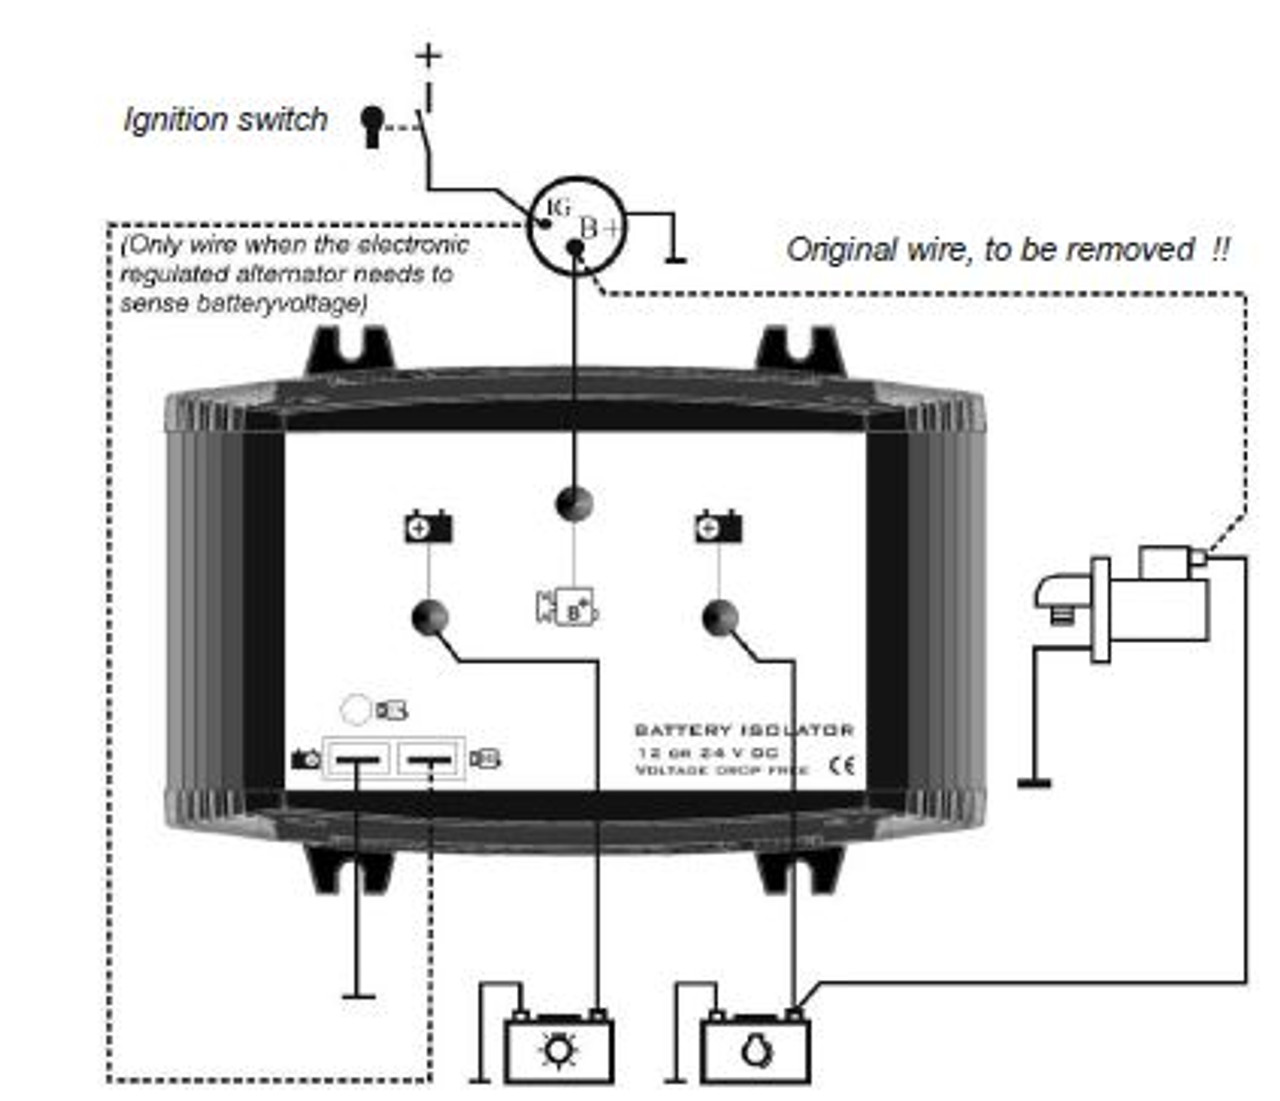 battery isolator wiring diagram with converter cristec mosfet marine battery isolator  cristec mosfet marine battery isolator